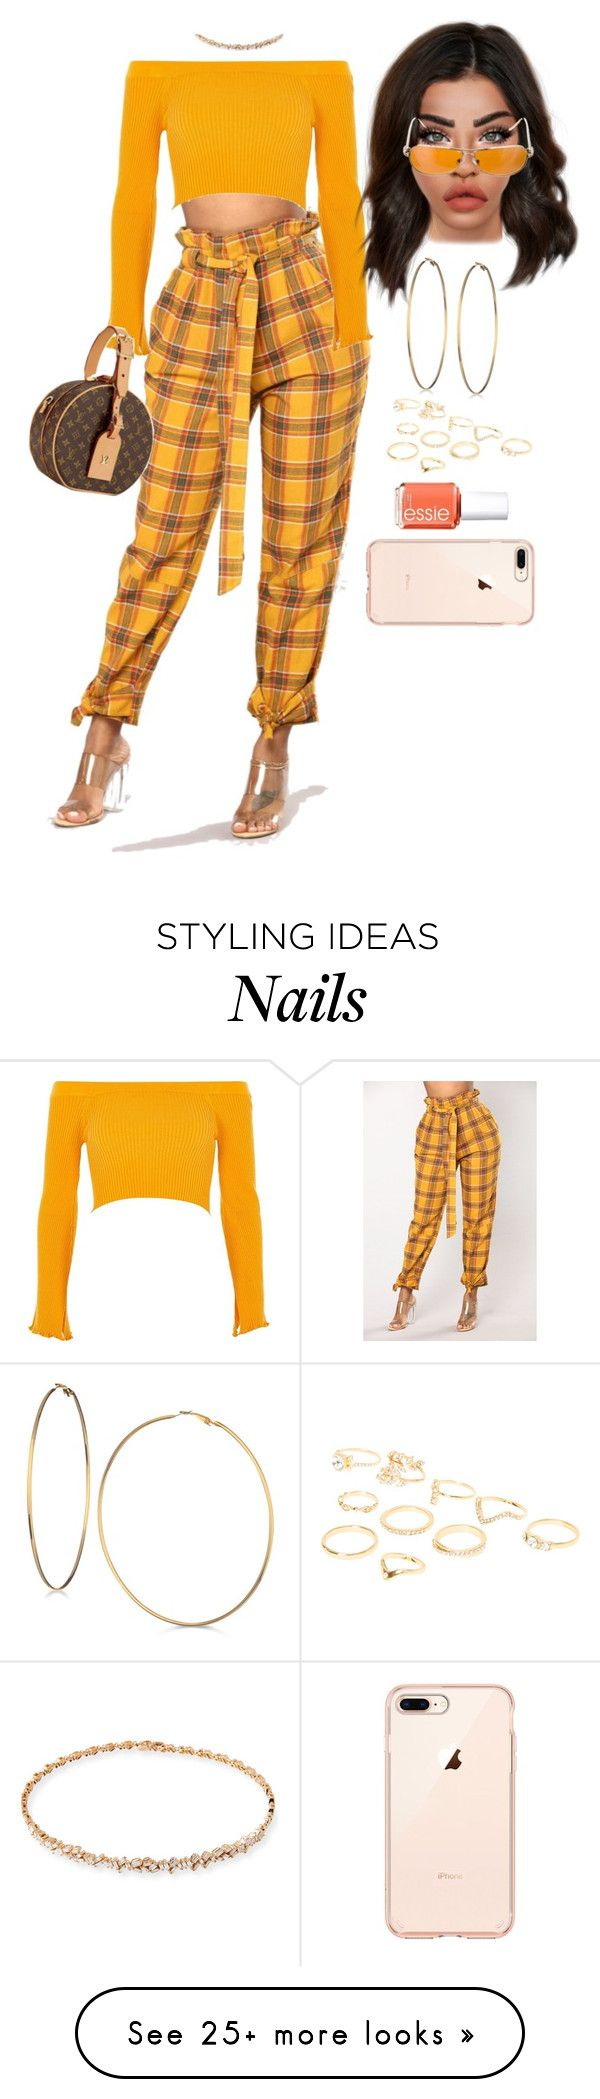 """Untitled #3038"" by mrkr-lawson on Polyvore featuring GUESS, River Island, Suzanne Kalan, Louis Vuitton, Chrome Hearts and Essie"